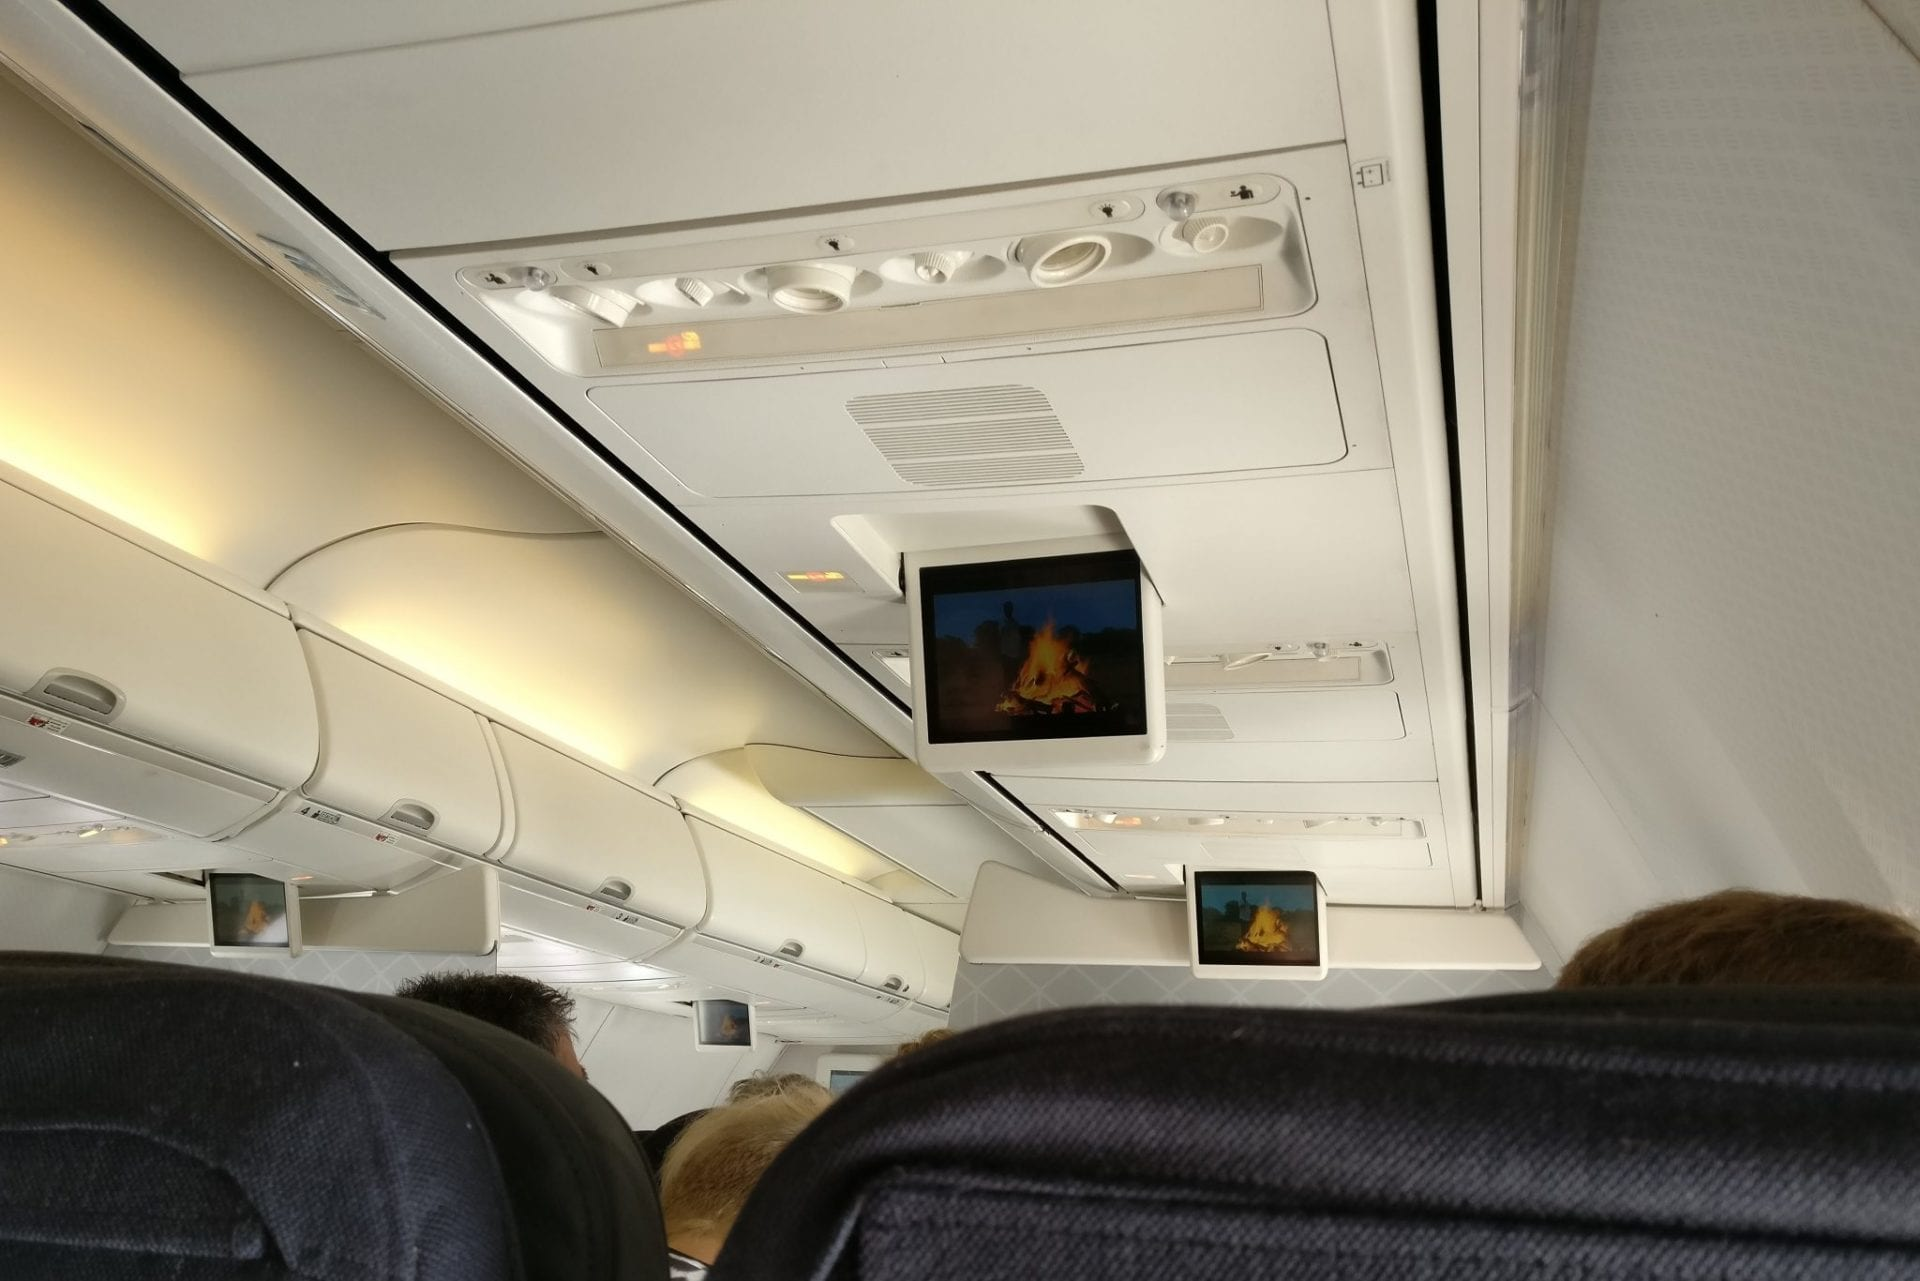 qantas-economy-class-boeing-737-entertainment-3